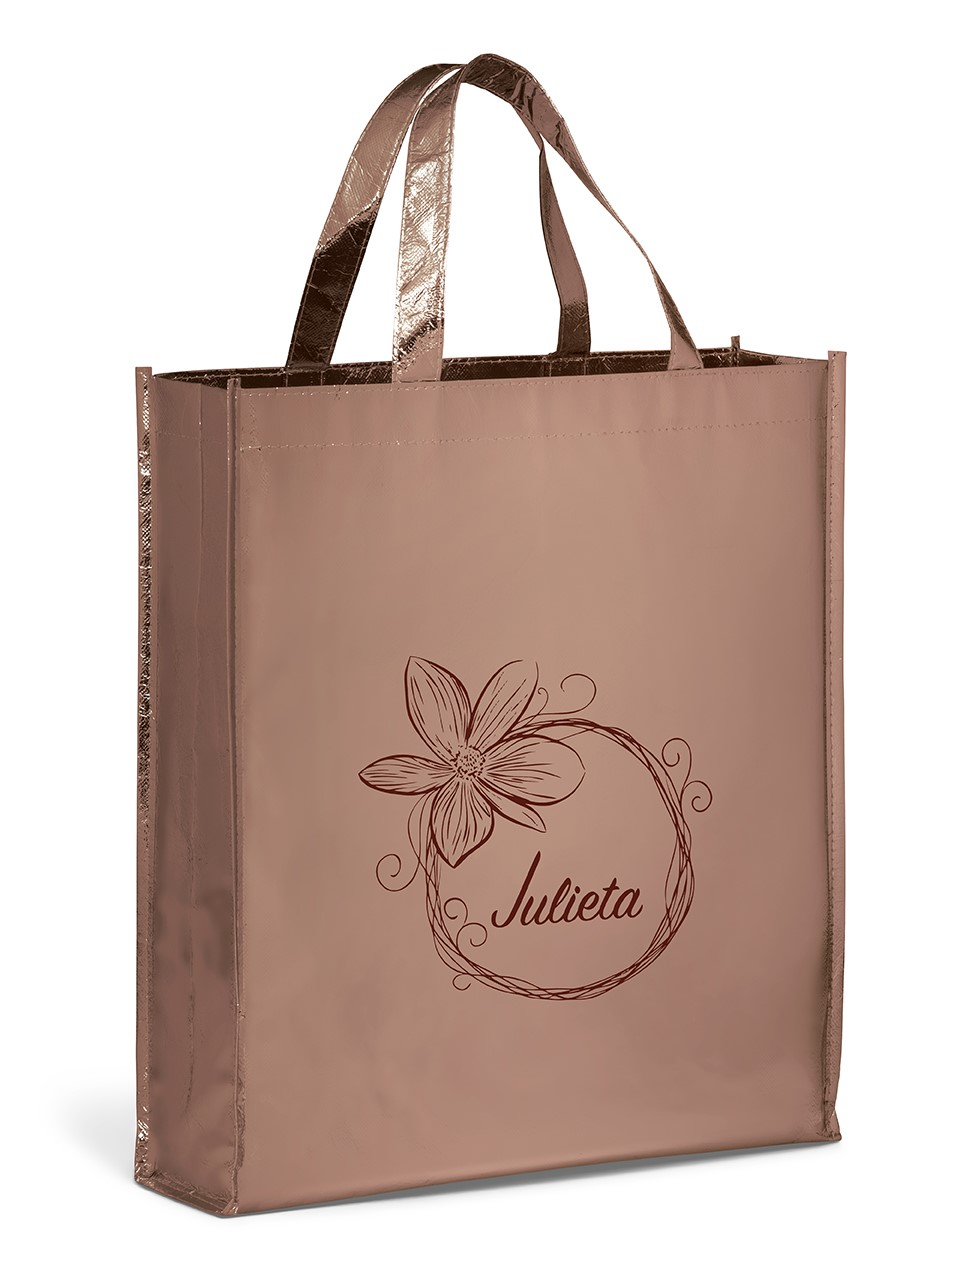 Product: Belissimo Tote - Rose Gold